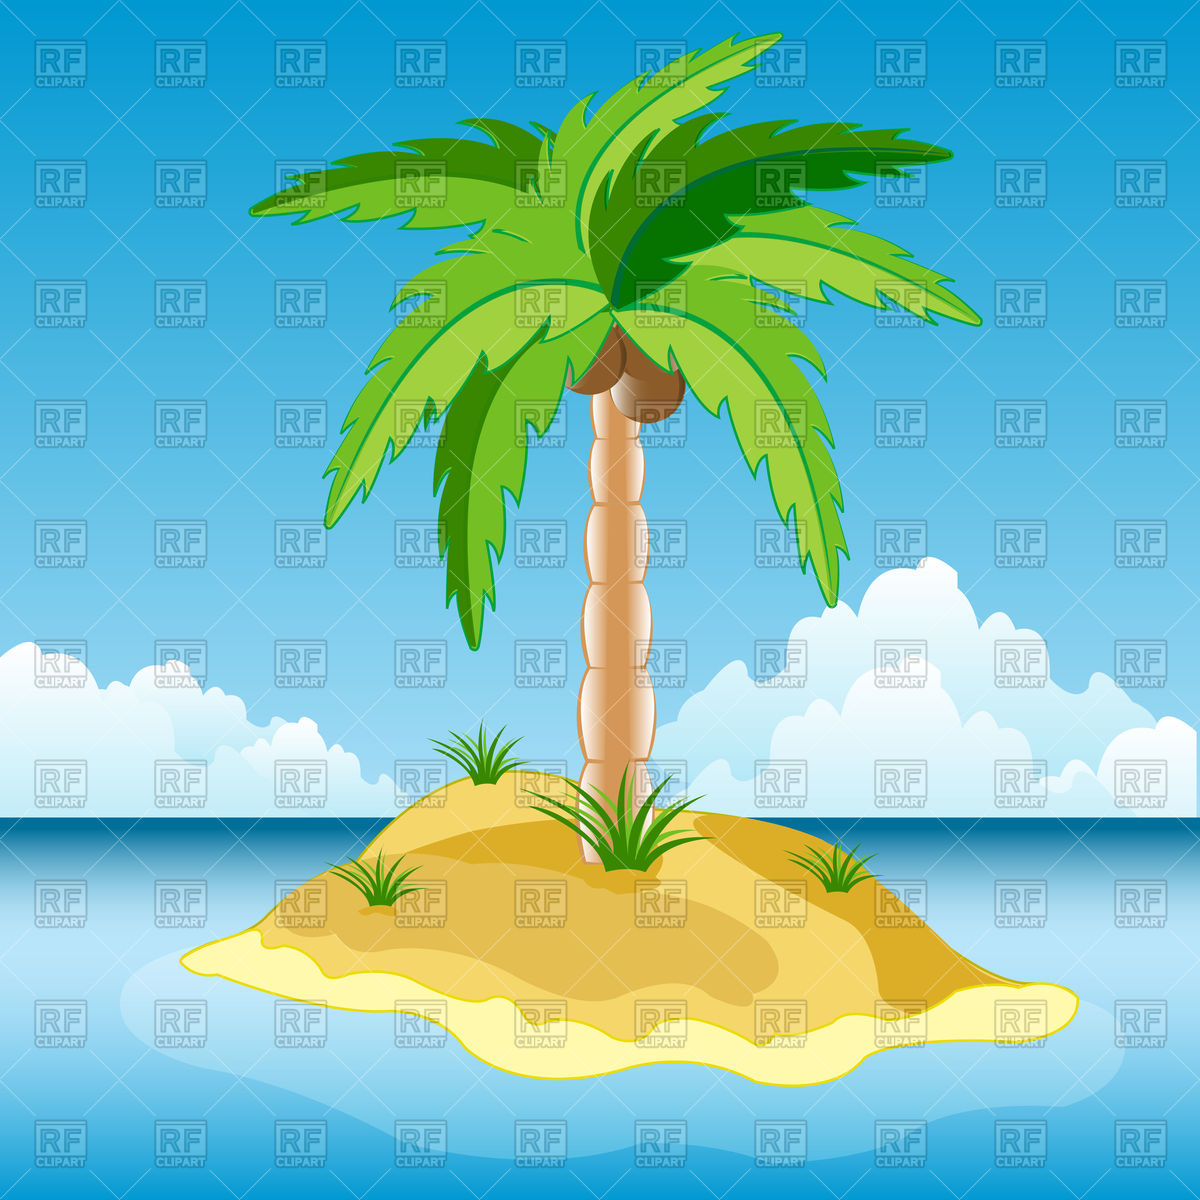 Island in sea with palm tree Vector Image #91957.